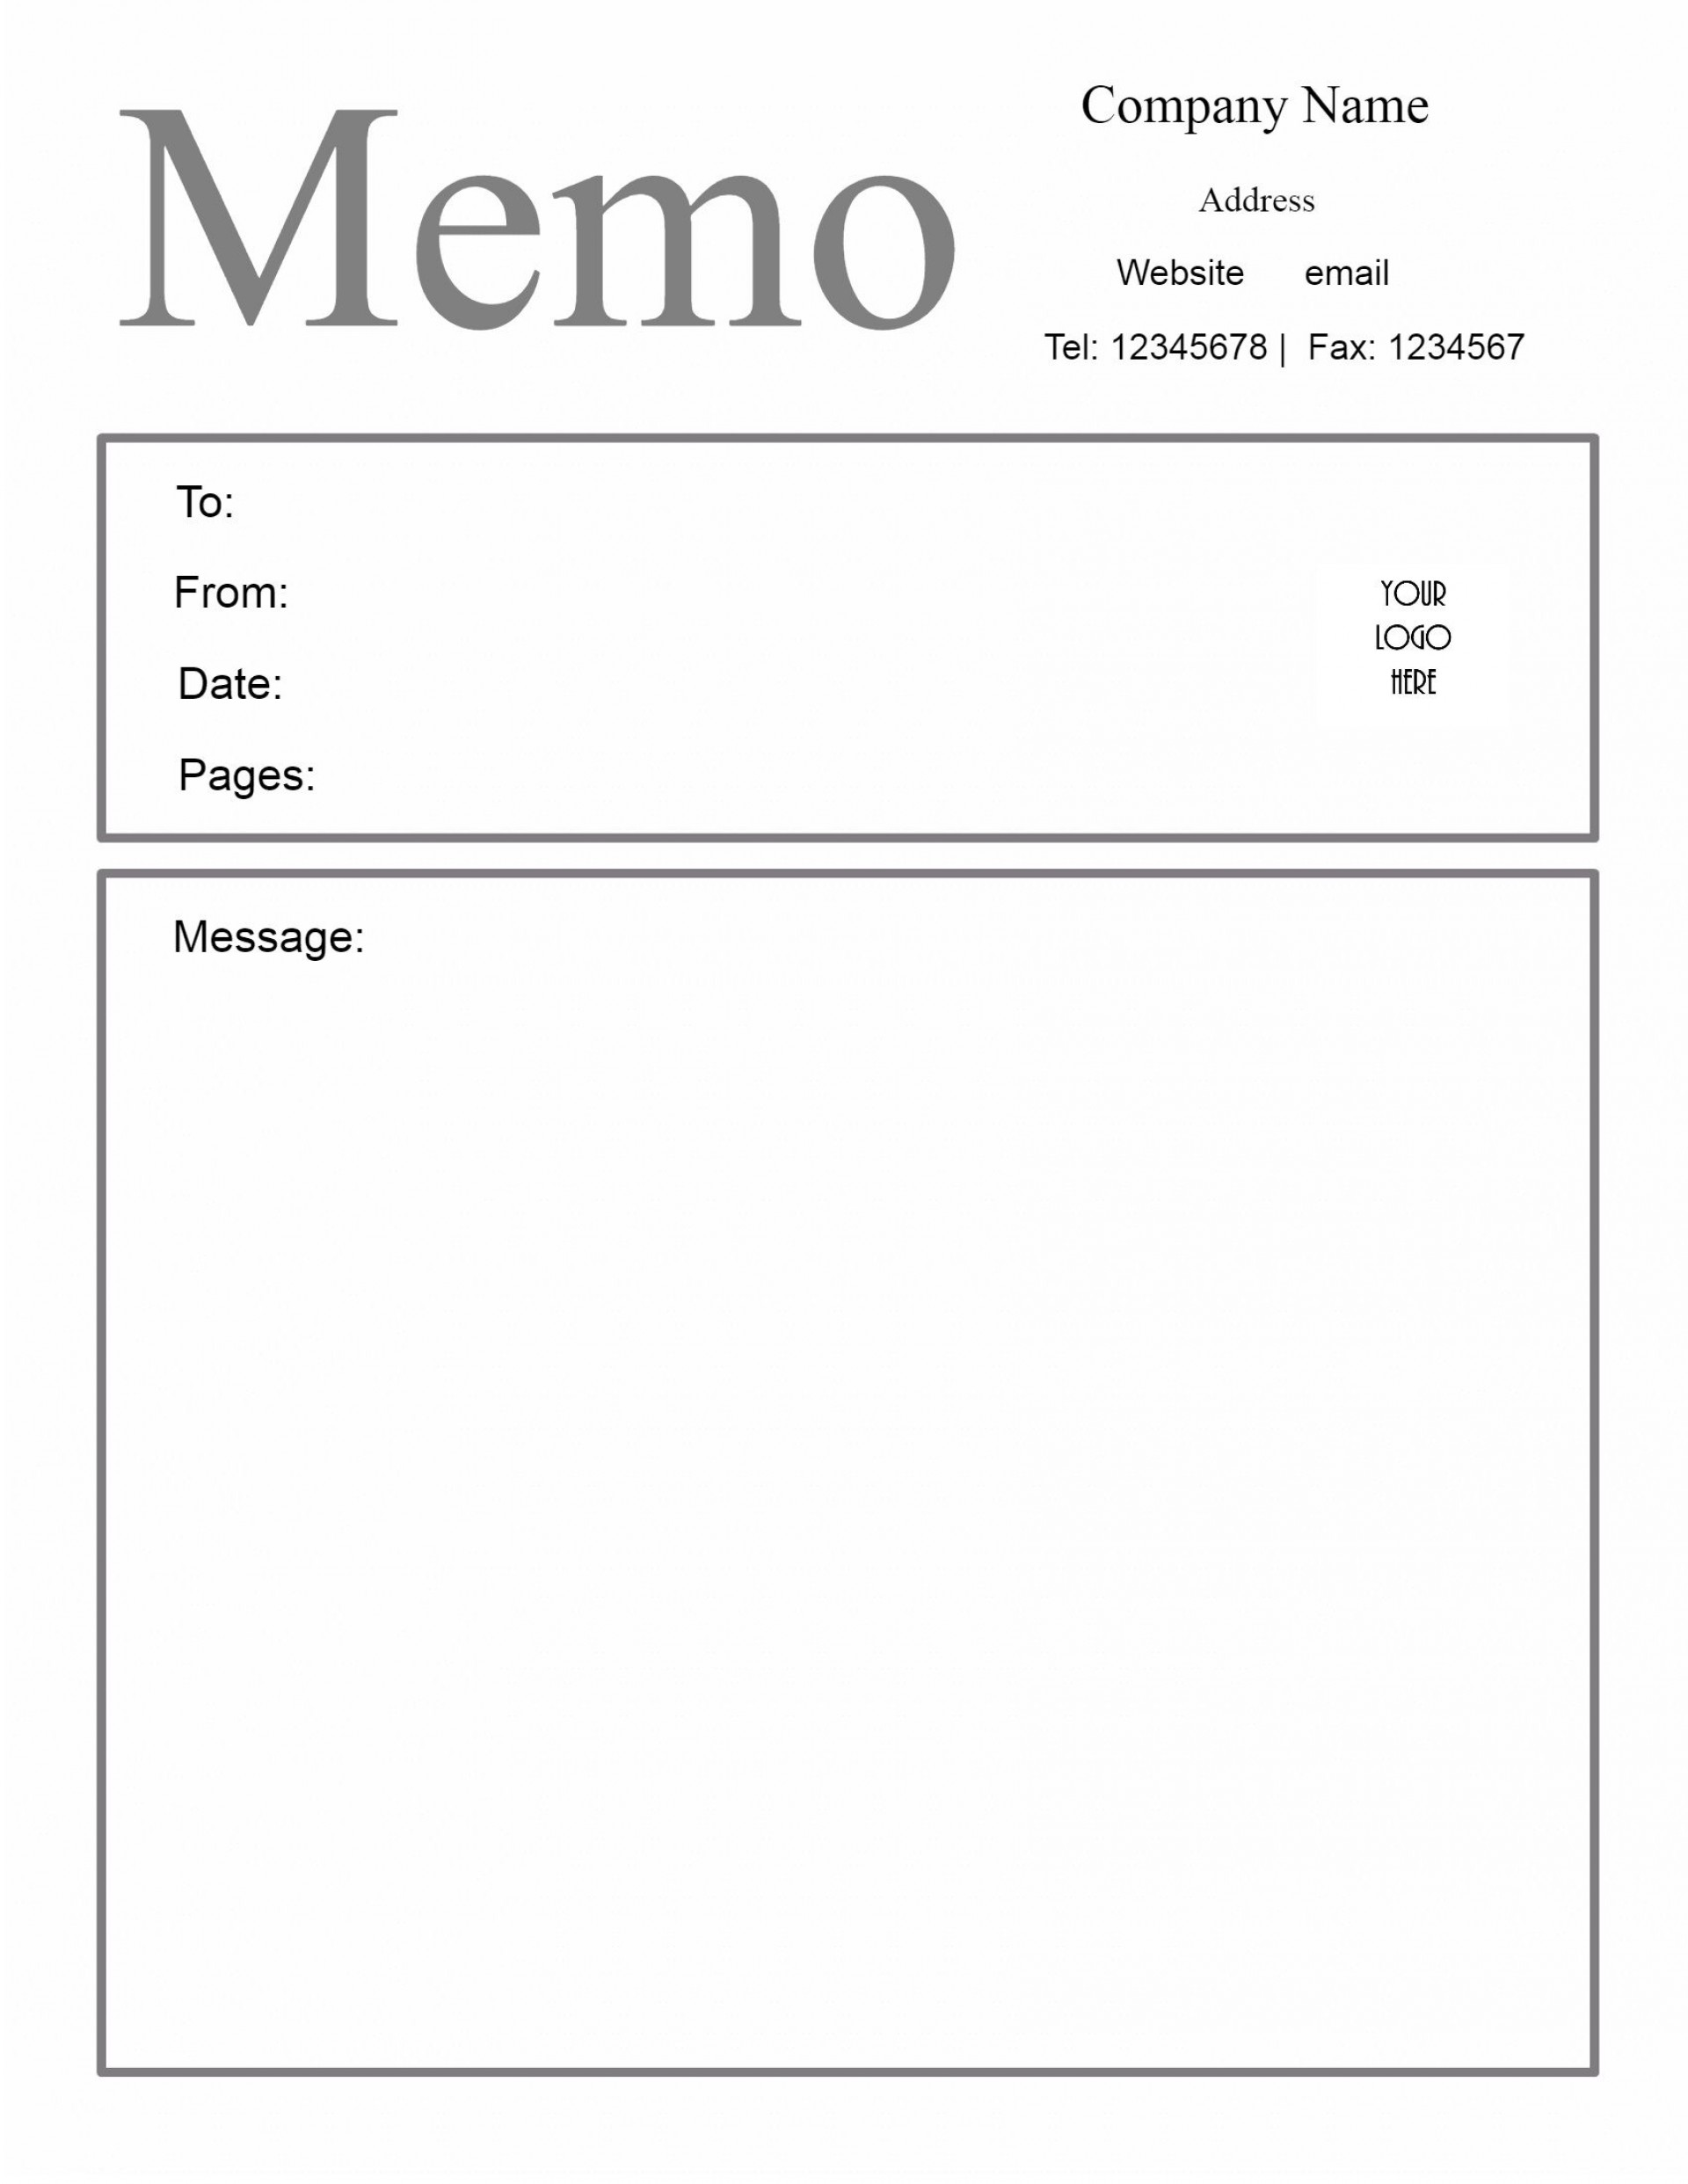 008 Rare Memo Template For Word High Resolution  Free Cash Sample 20131920